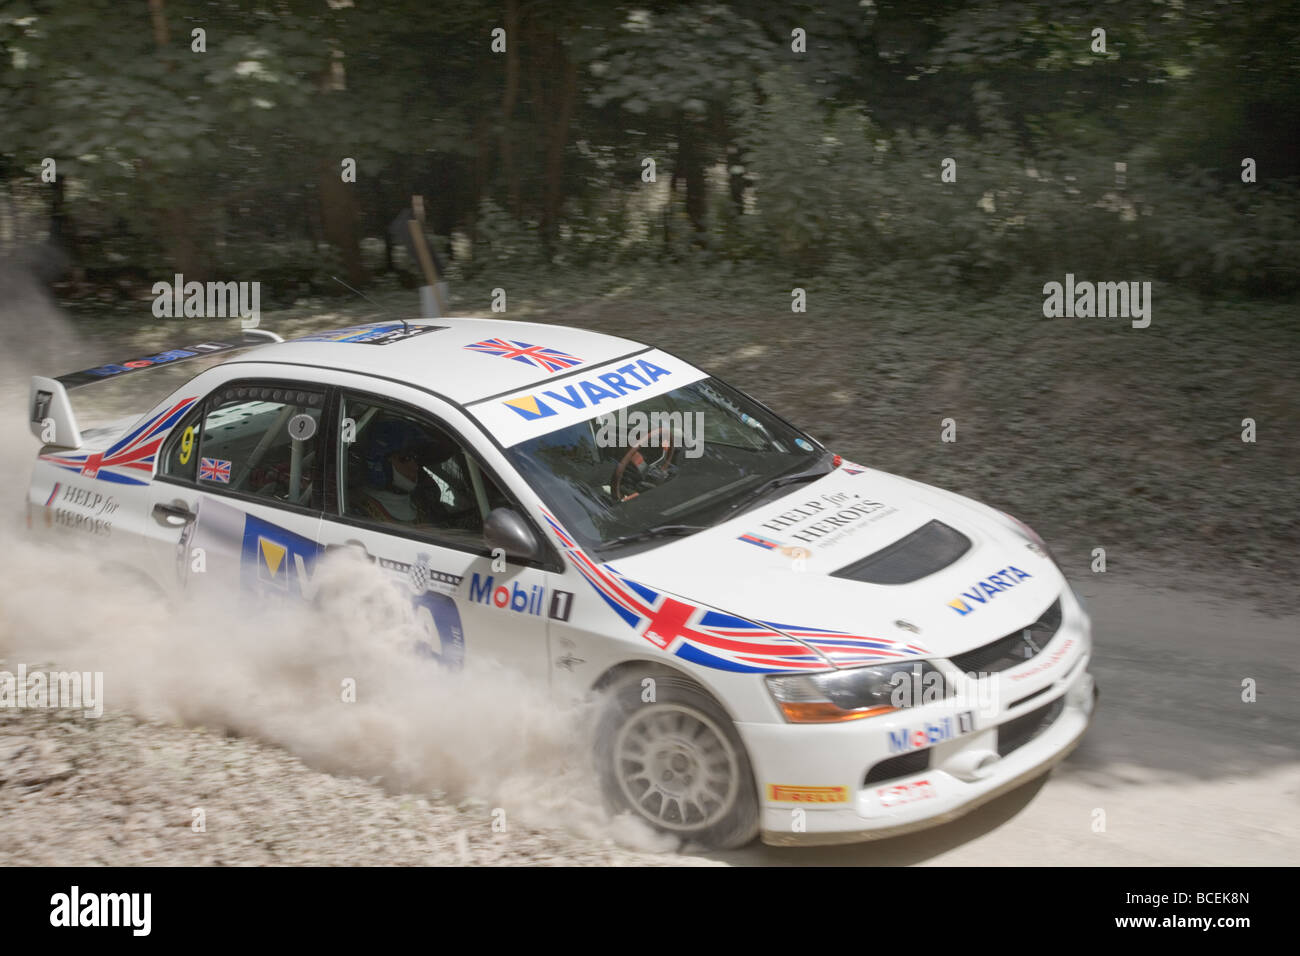 Rallye-Auto auf dem Goodwood Festival of Speed 2009 Motion blur Stockbild